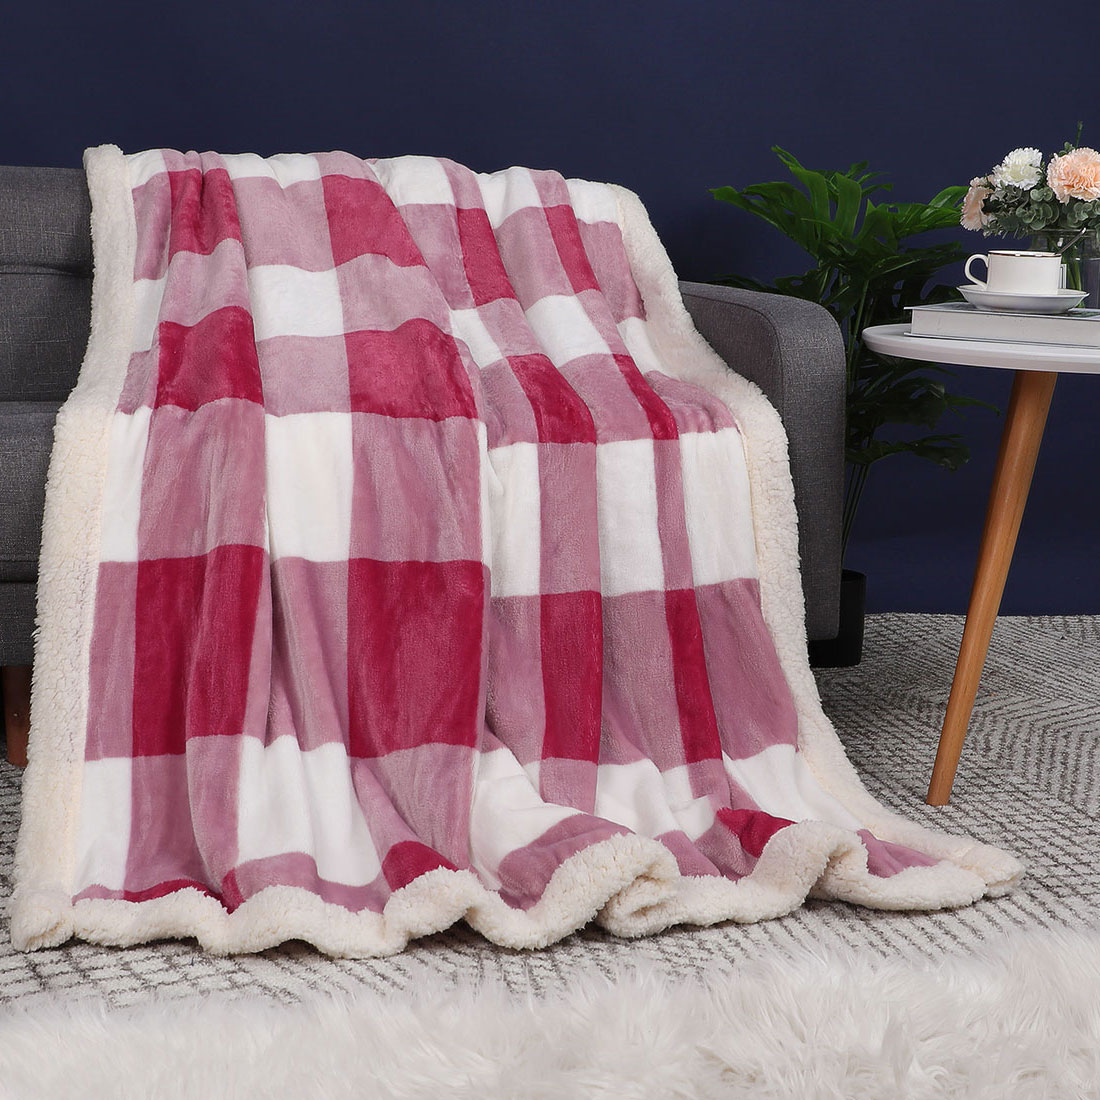 Quilts Lounge wear. Striped Flannel Fabric Cuddly Soft for making Blankets